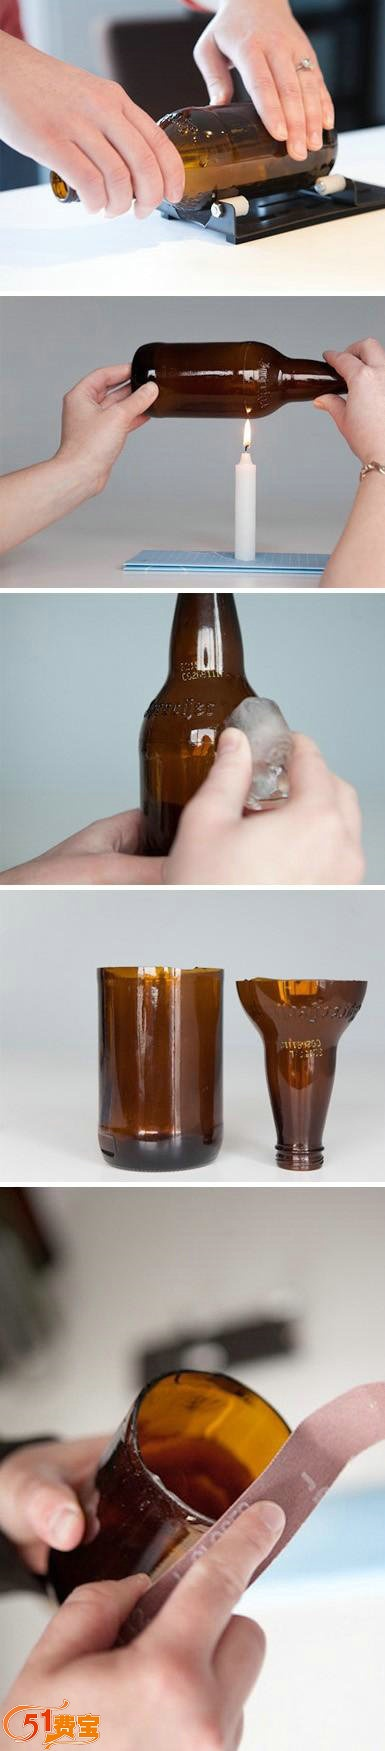 51Feibao Reuse DIY Craft: Recycling beer bottle for home flowerpot